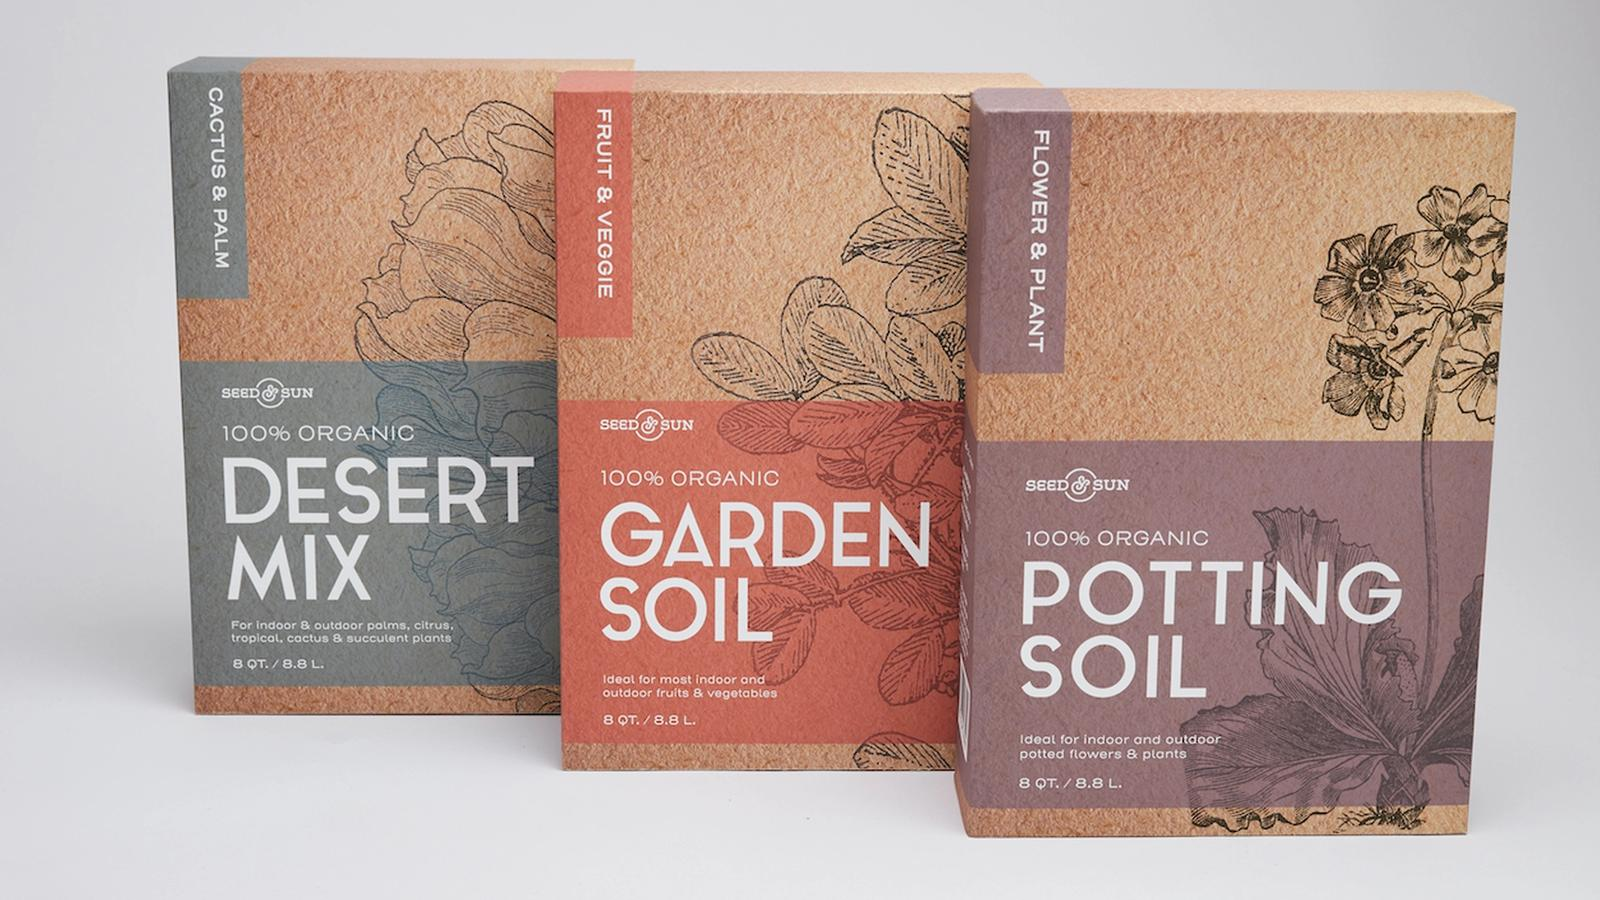 Seed & Sun package design